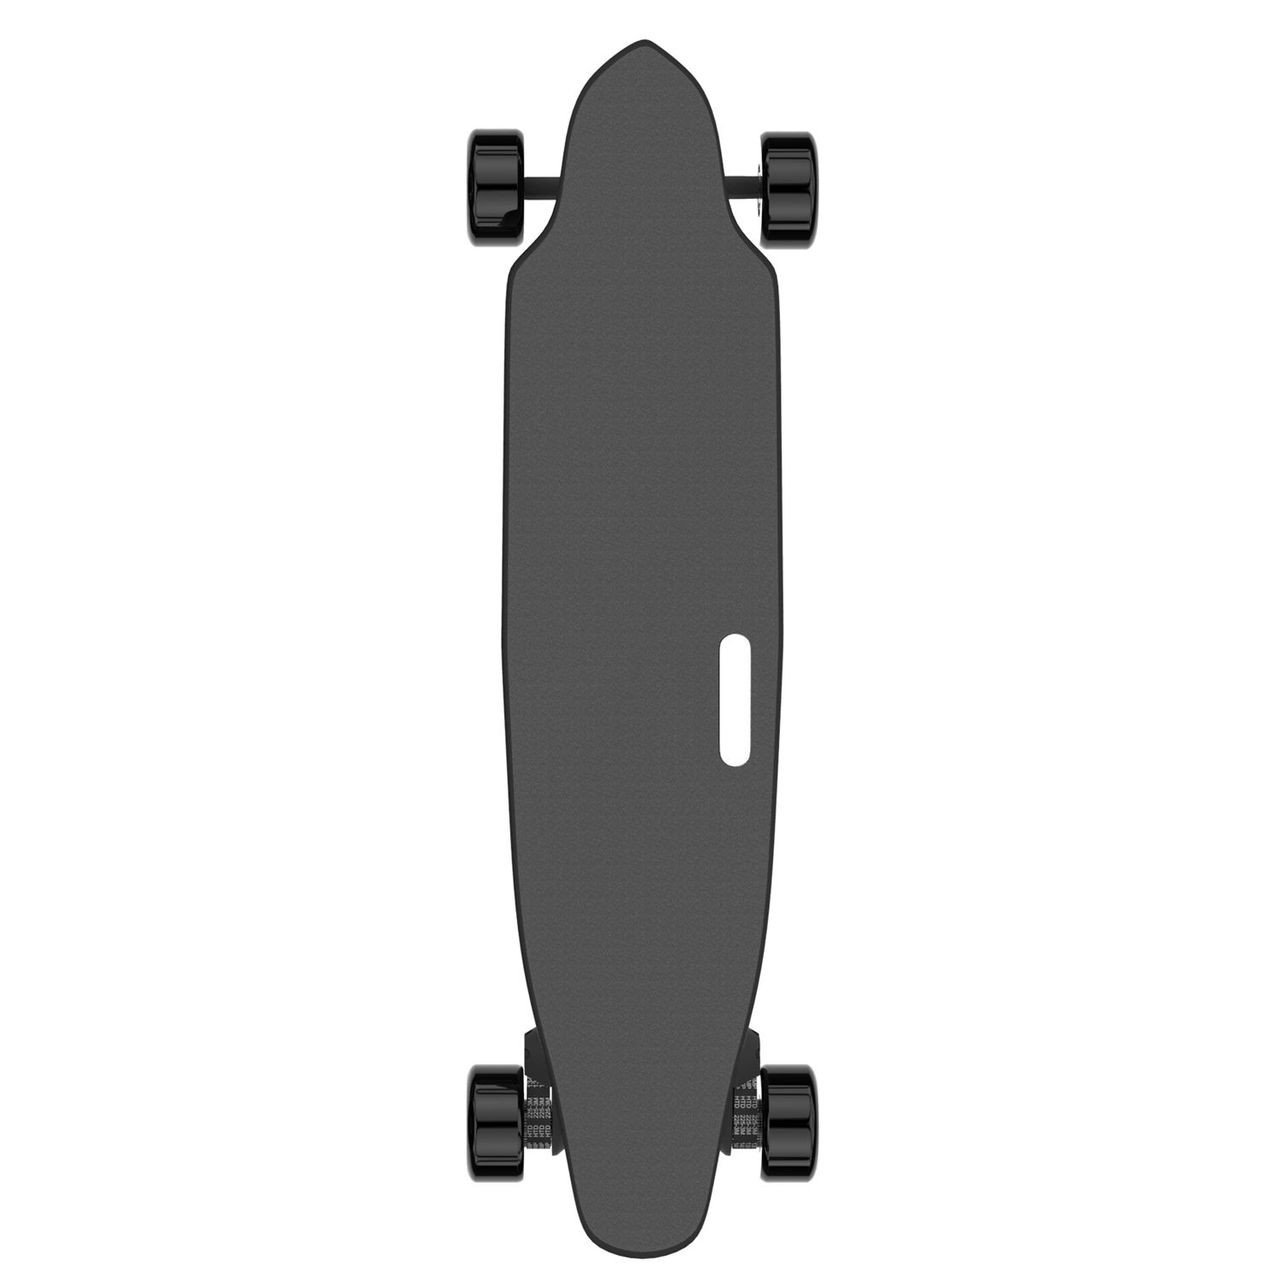 LiftBoard Dual Motor Electric Skateboard - Black - Refurbished